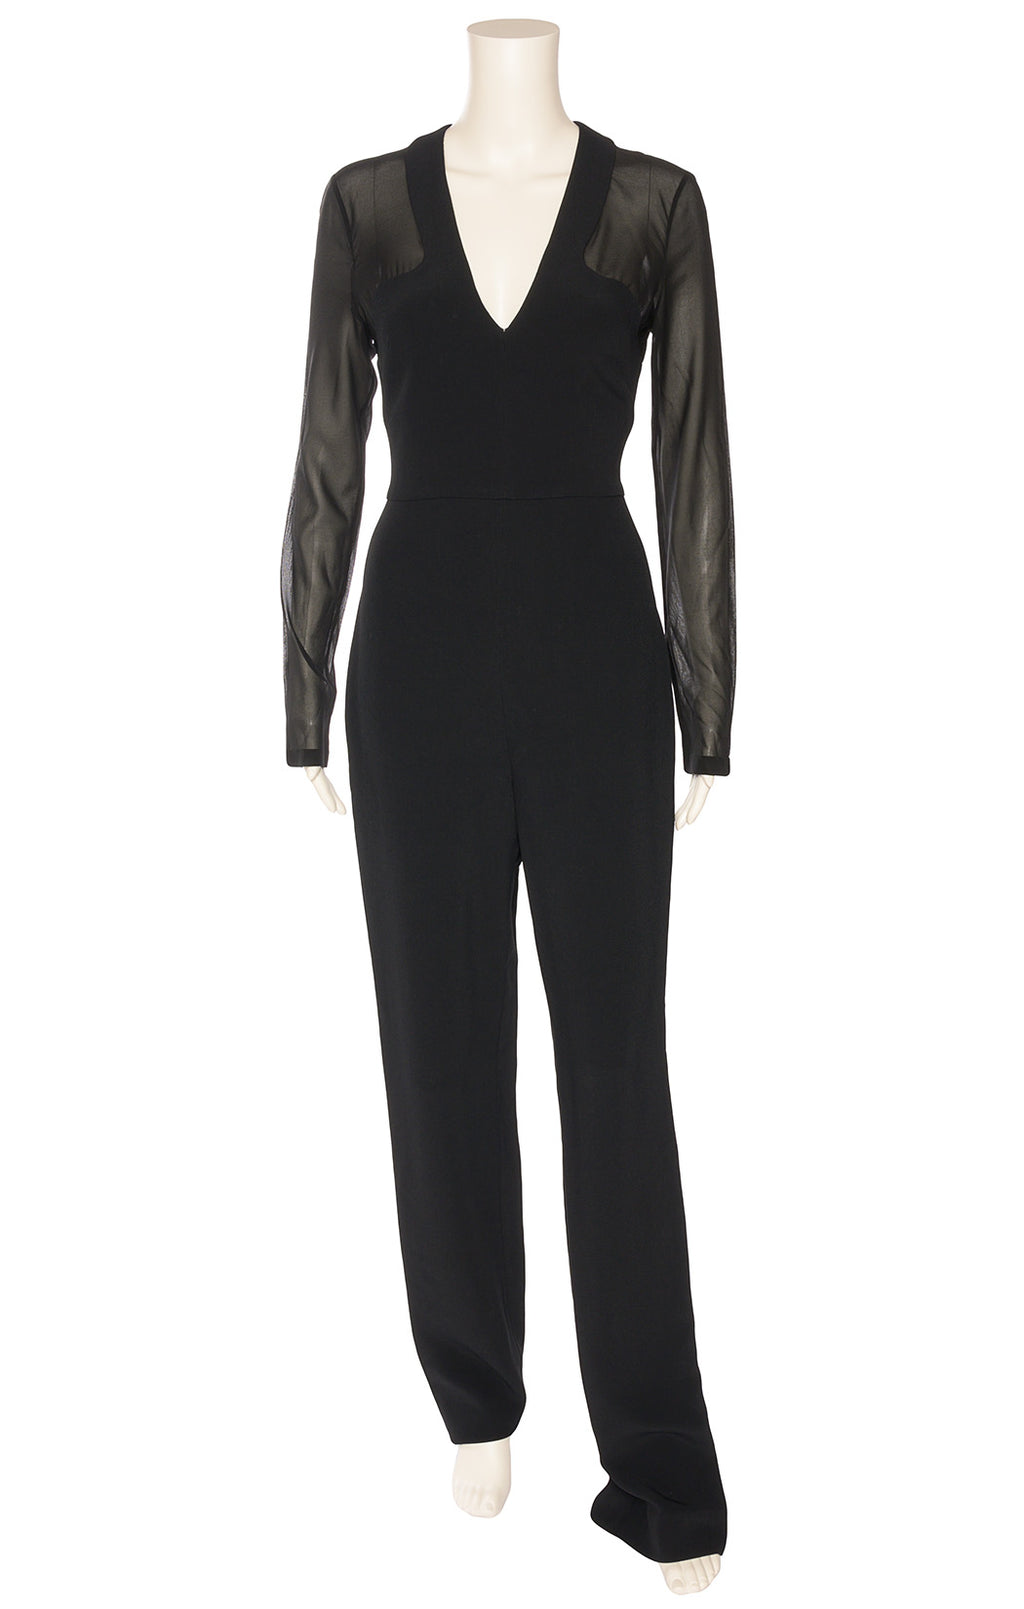 Black v-neck jumpsuit with chiffon long sleeves and waist with back zipper